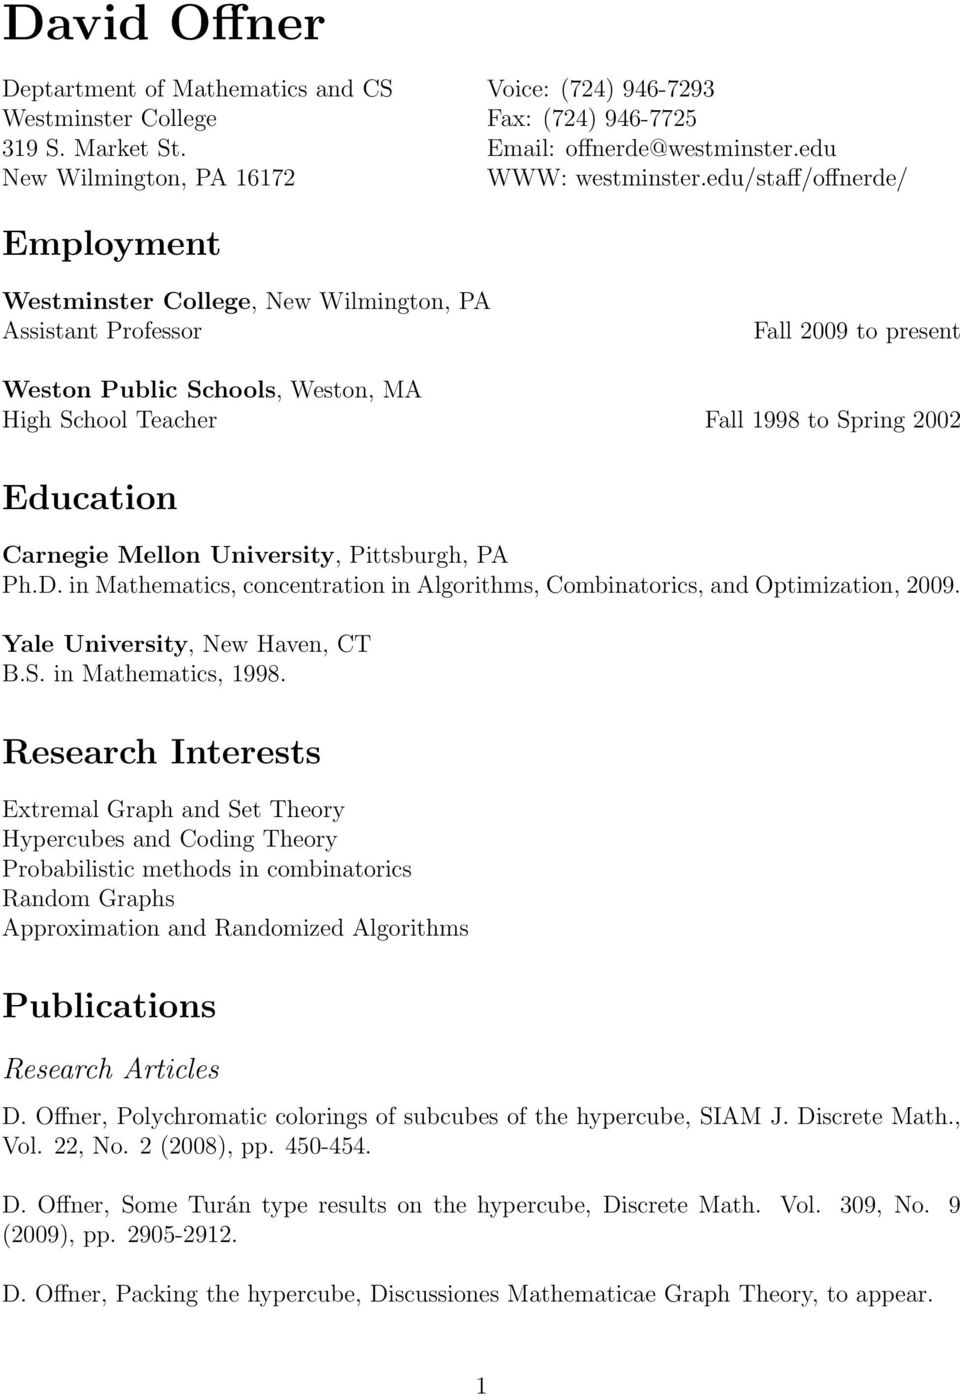 edu/staff/offnerde/ Employment Westminster College, New Wilmington, PA Assistant Professor Fall 2009 to present Weston Public Schools, Weston, MA High School Teacher Fall 1998 to Spring 2002